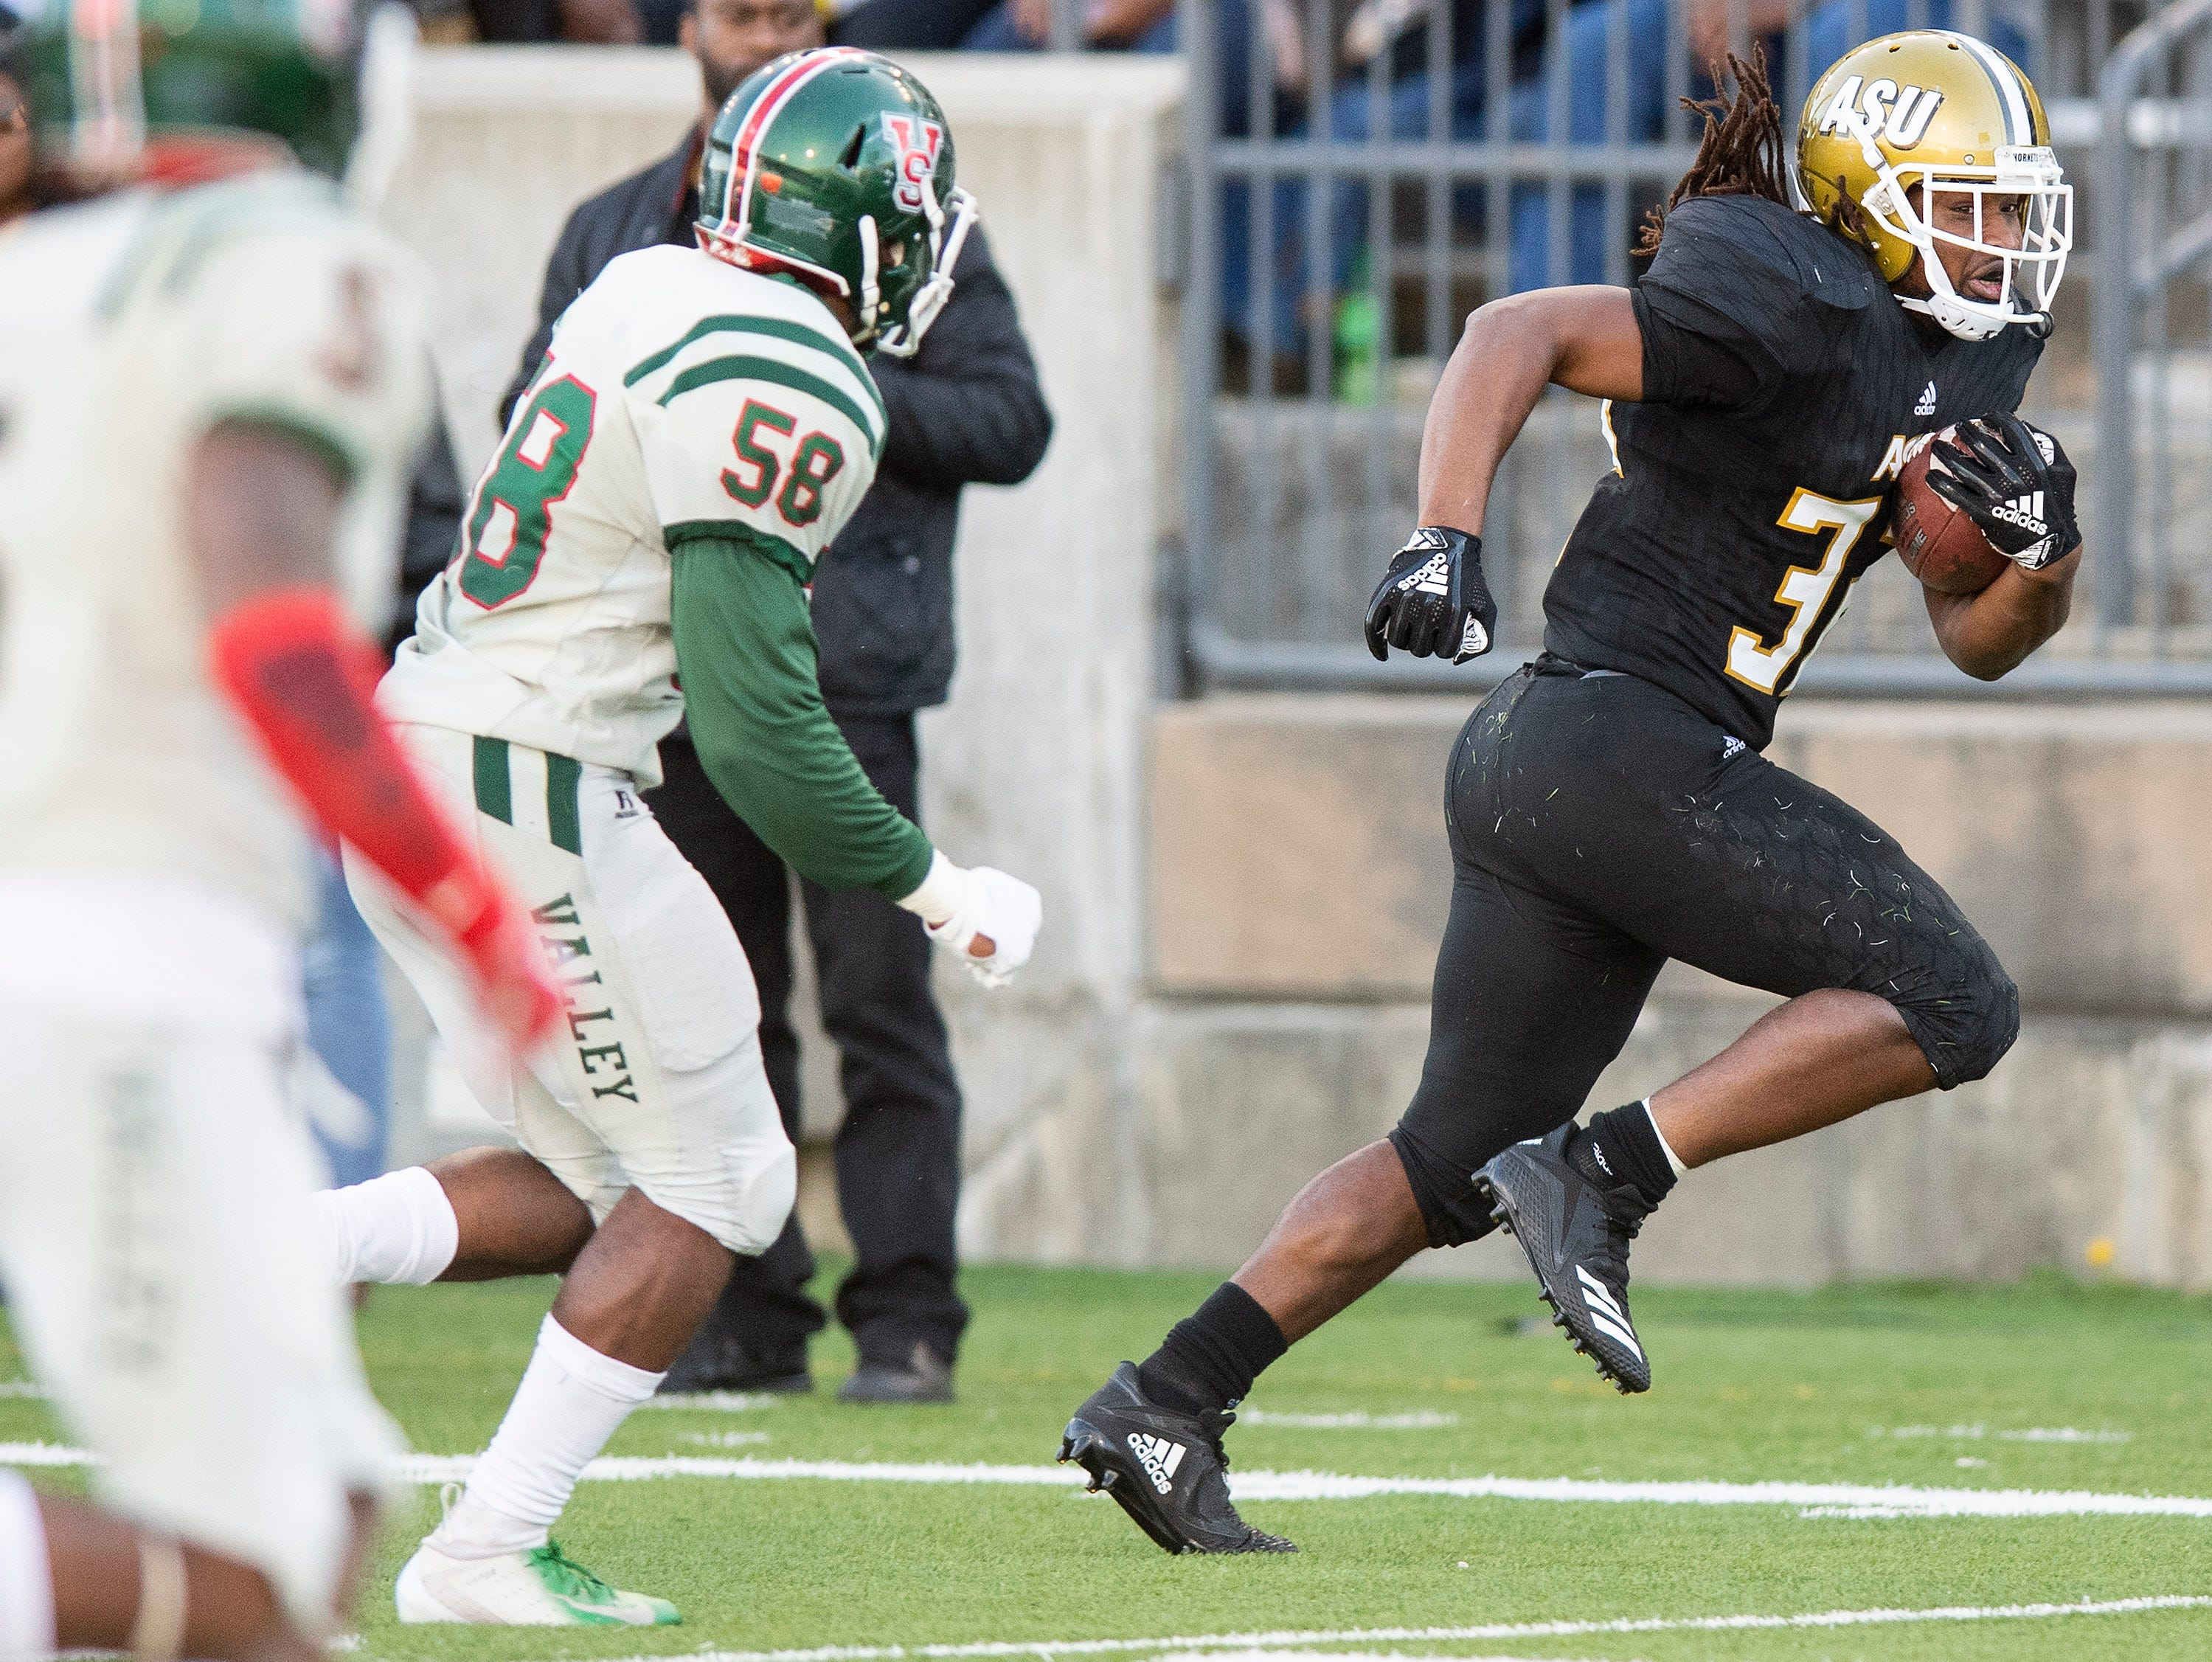 Alabama State University running back Tallesin Farmer (32)  carries the ball against Mississippi Valley State in first half action of the Turkey Day Classic at Hornet Stadium on the ASU campus in Montgomery, Ala., on Thanksgiving Day, Thursday November 22, 2018.